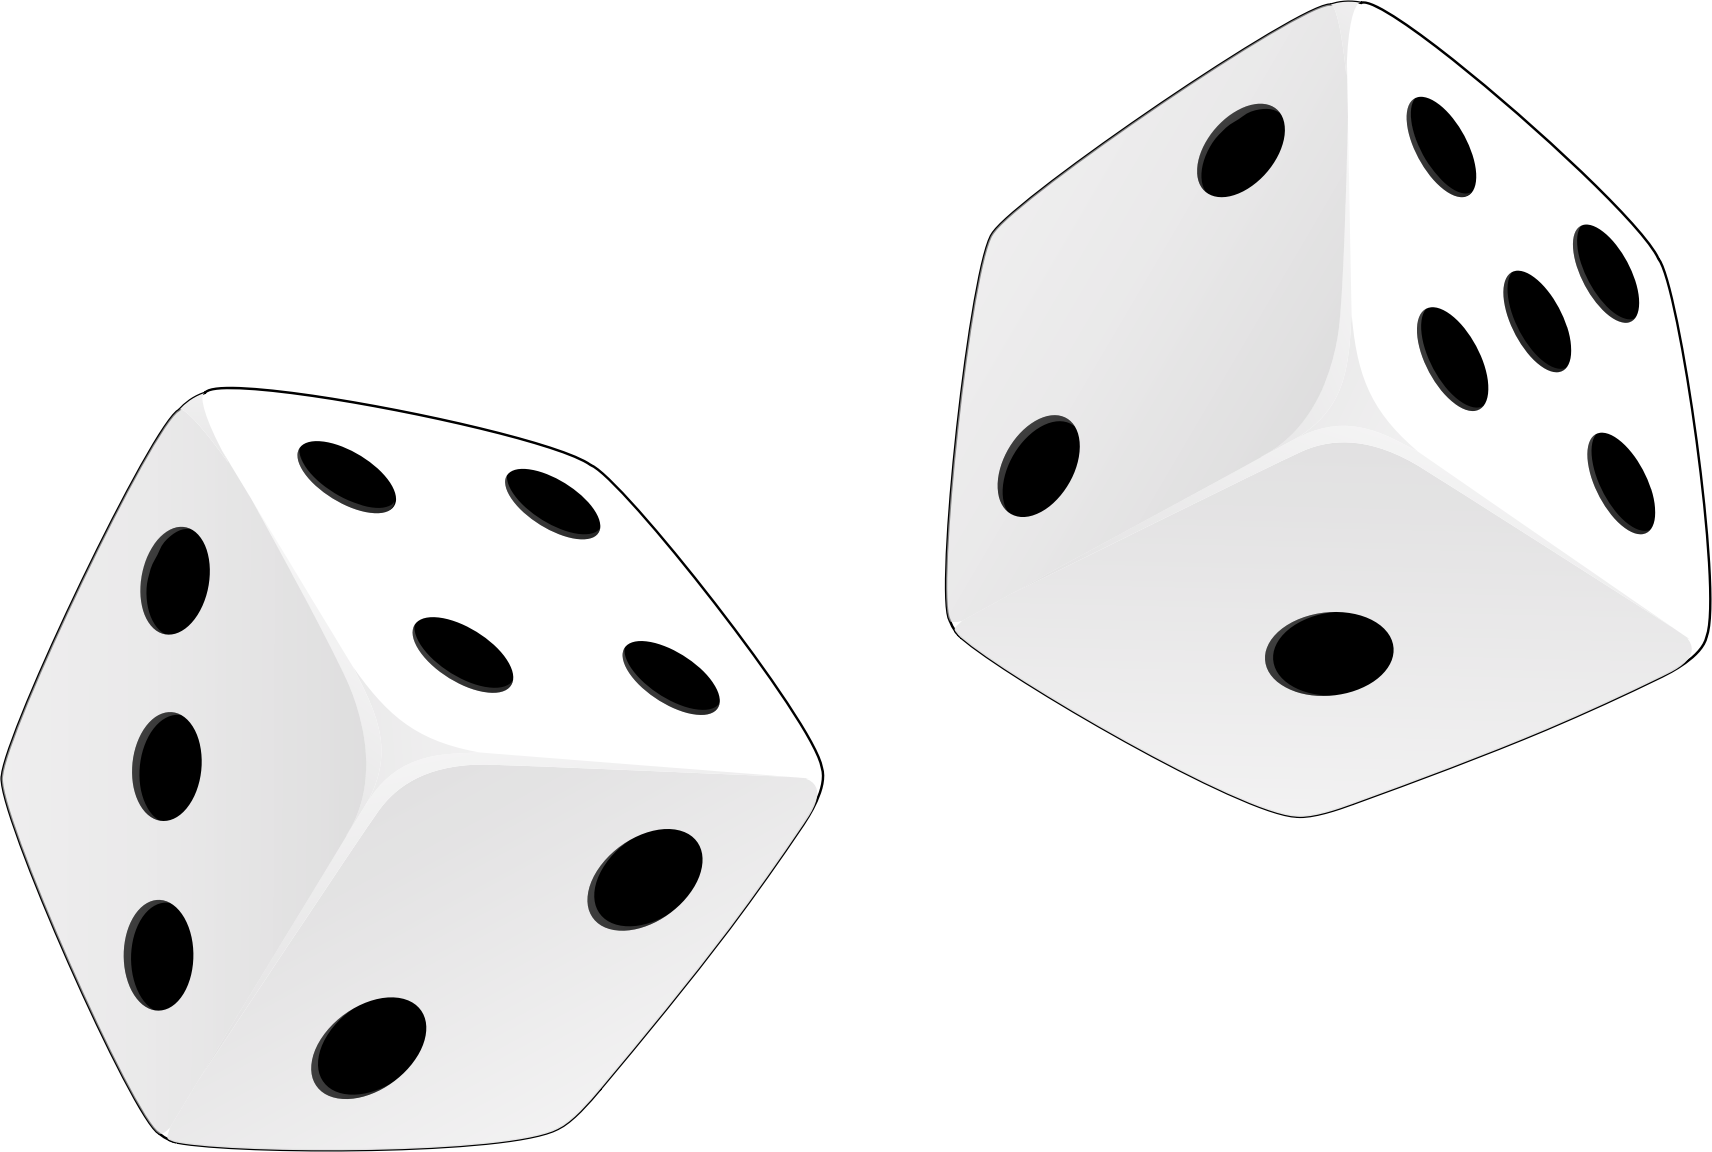 vector free library Clip art images illustrations. Transparent dice background